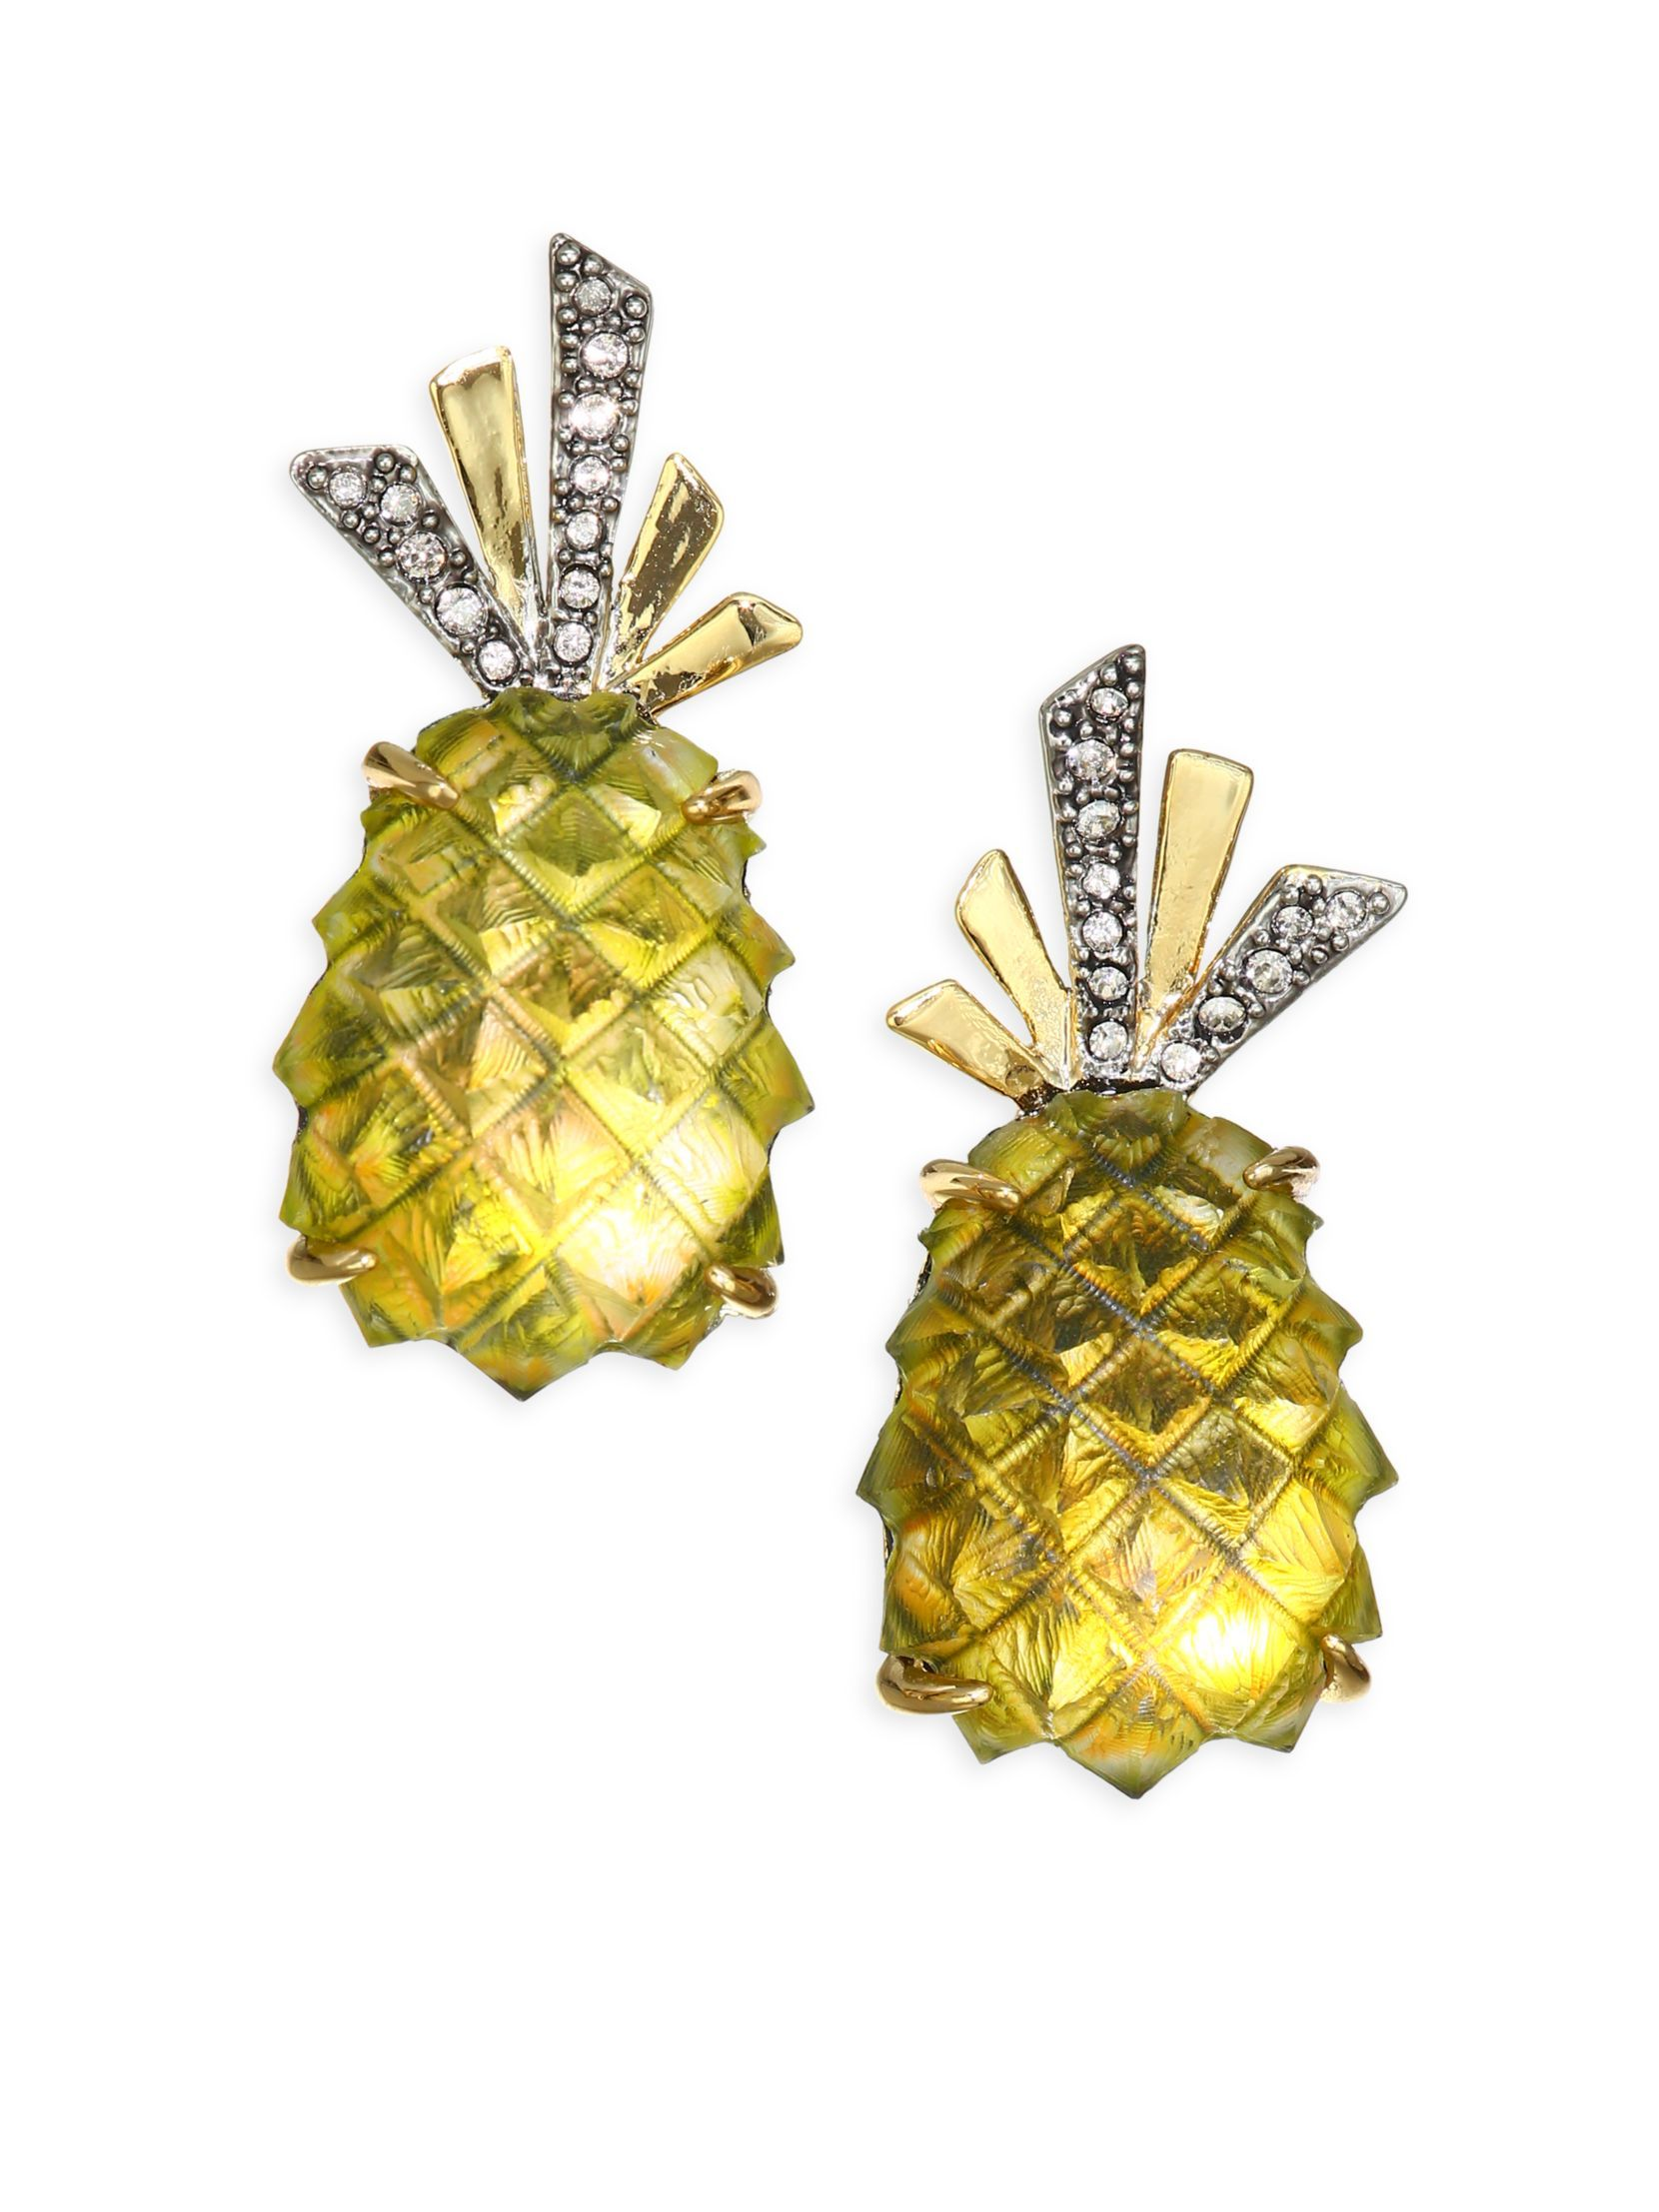 Alexis Bittar Pineapple Lucite Clip-On Earrings IC0Rhp